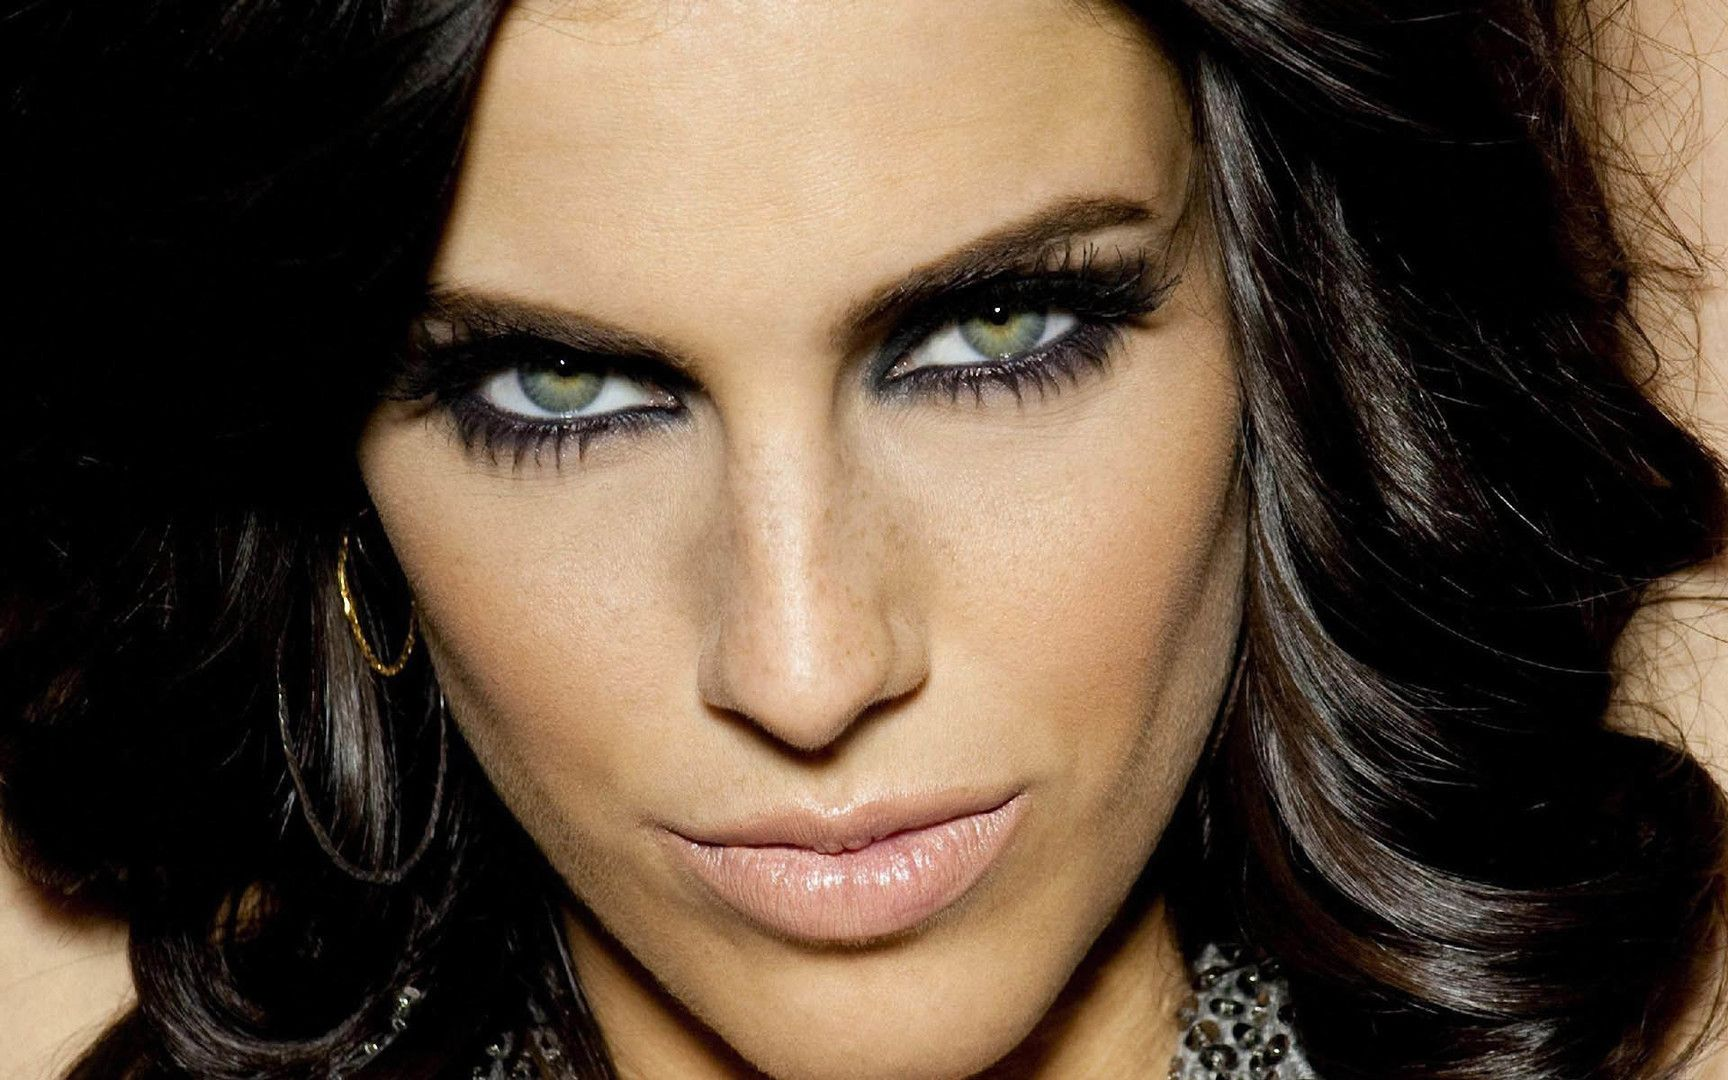 jessica lowndes Wallpaper HD Wallpaper | WALLPAPERS | Pinterest ...